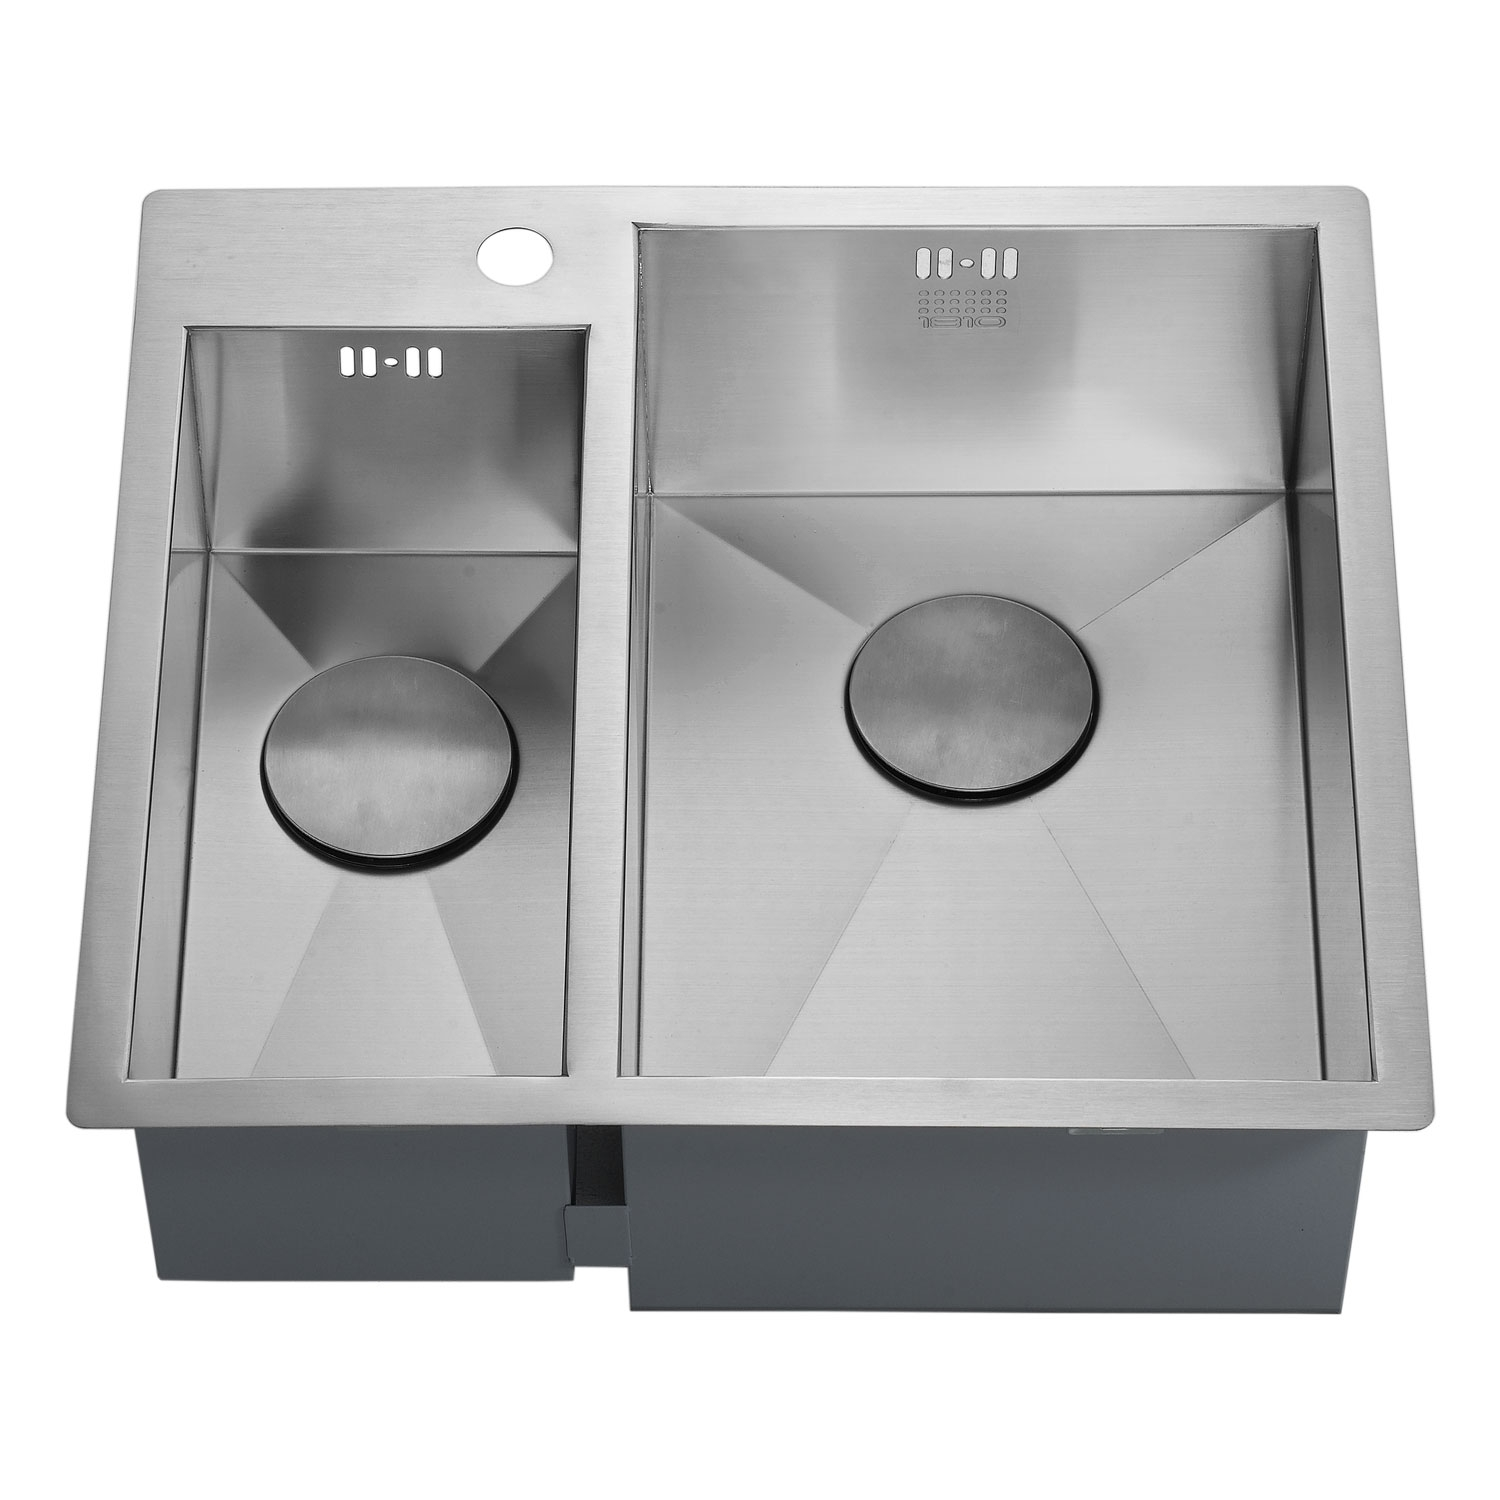 The 1810 Company Zenduo 180/310 I-F 1.5 Bowl Kitchen Sink - Right Hand-1